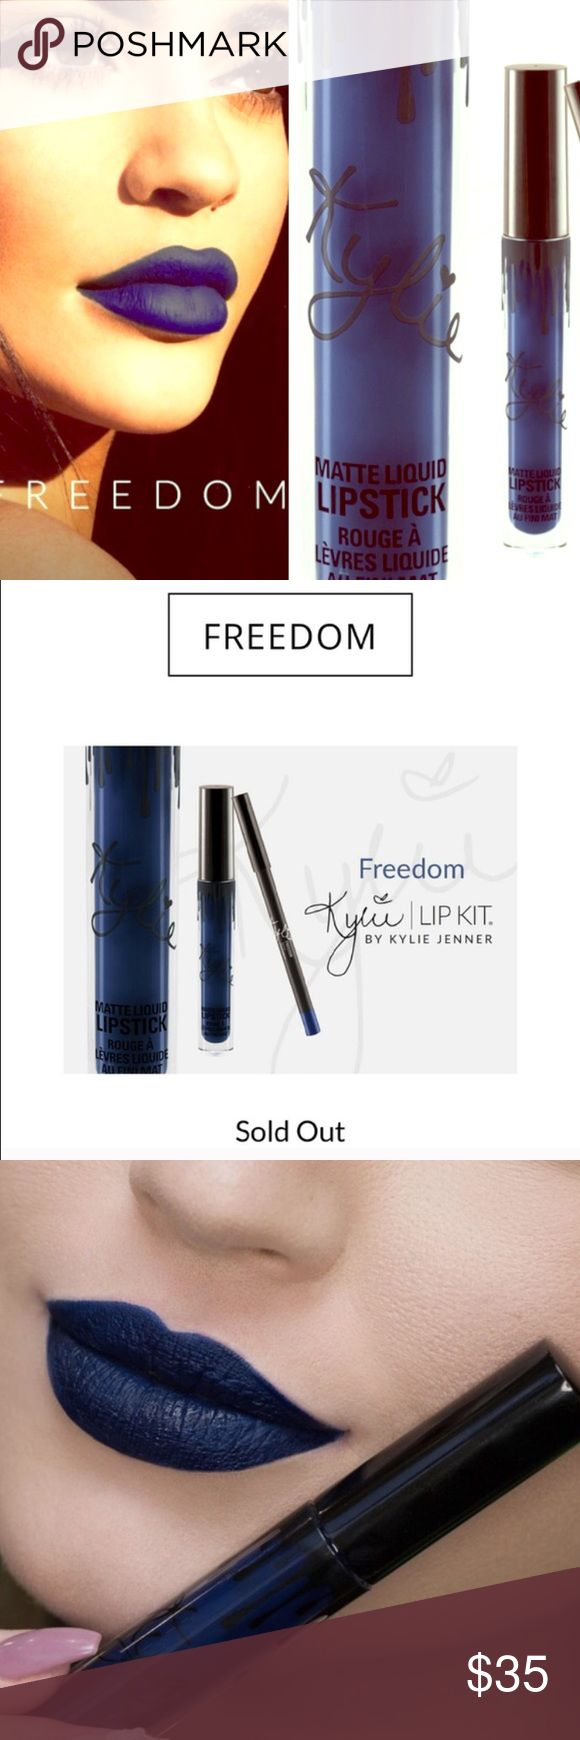 Kylie Jenner Freedom limited edition lip kit Only used to swatch. Limited edition for the 4th of July this year, sold out on site. Purchase would include the liner, gloss, and the small individual box. I'm using it to hold my other Kylie kits rn, but I'd sell the large shipping box as well for $5 extra if anyone was interested. Would make a cute Christmas gift  Kylie Cosmetics Makeup